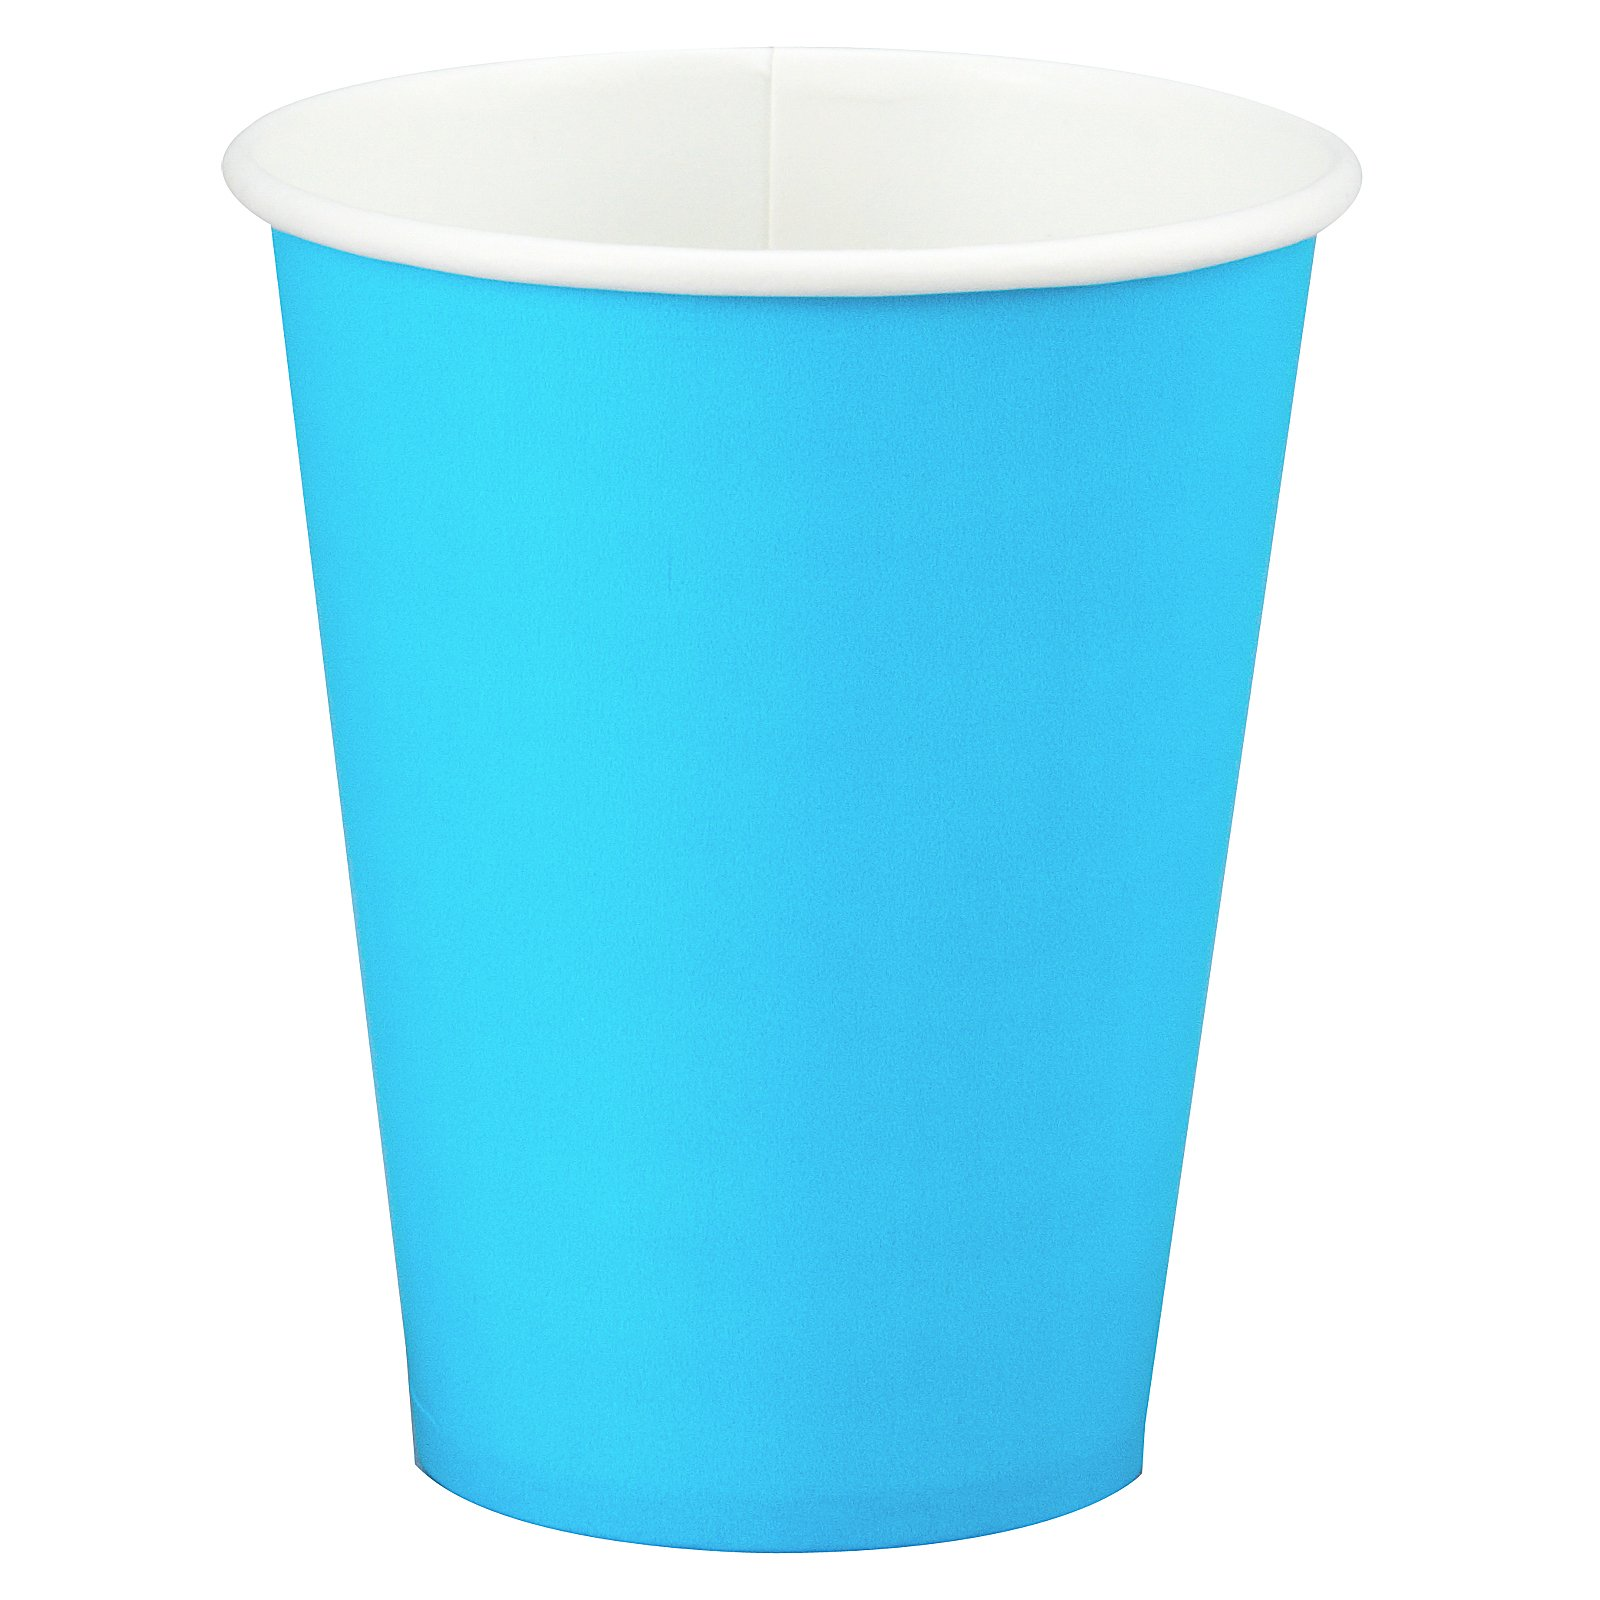 Bermuda Blue (Turquoise) 9 oz. Paper Cups (24 count) - Click Image to Close